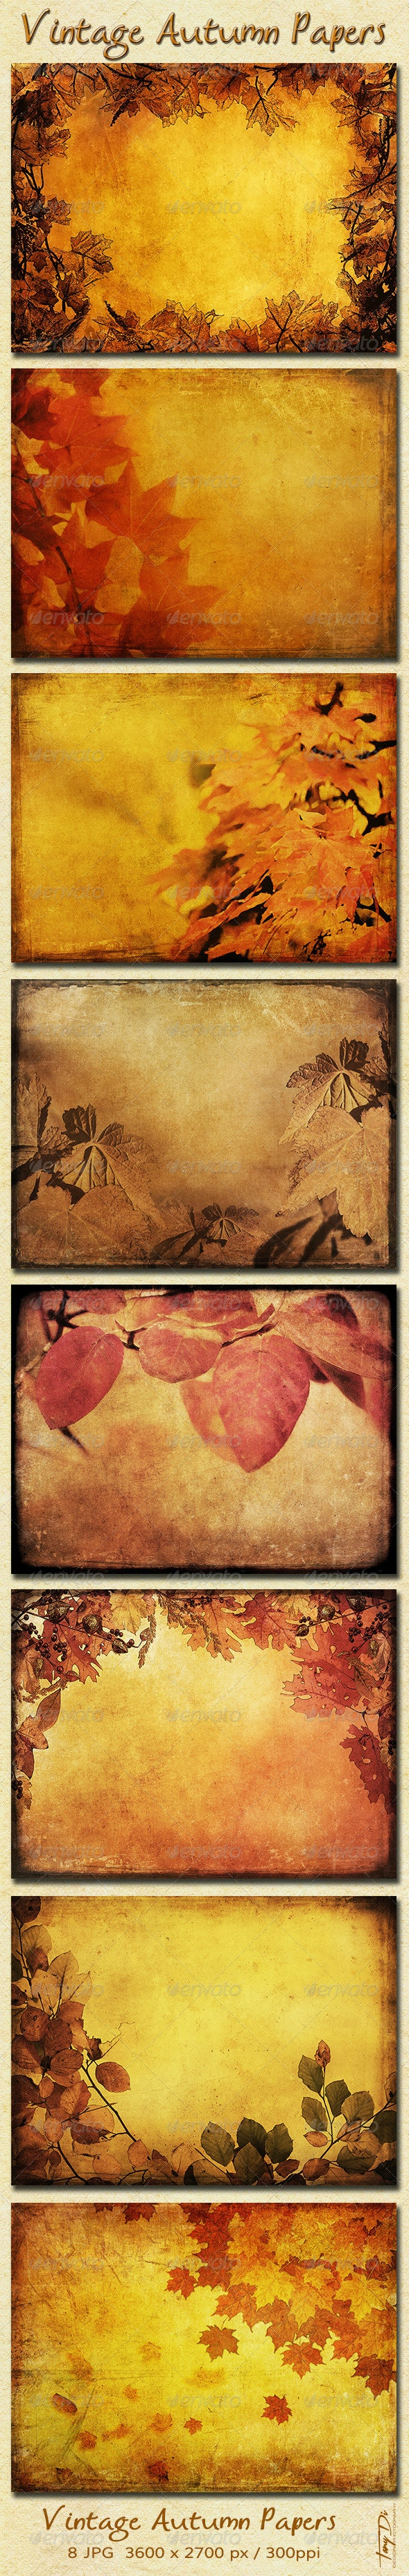 Vintage Autumn Papers with Leaves - Nature Backgrounds